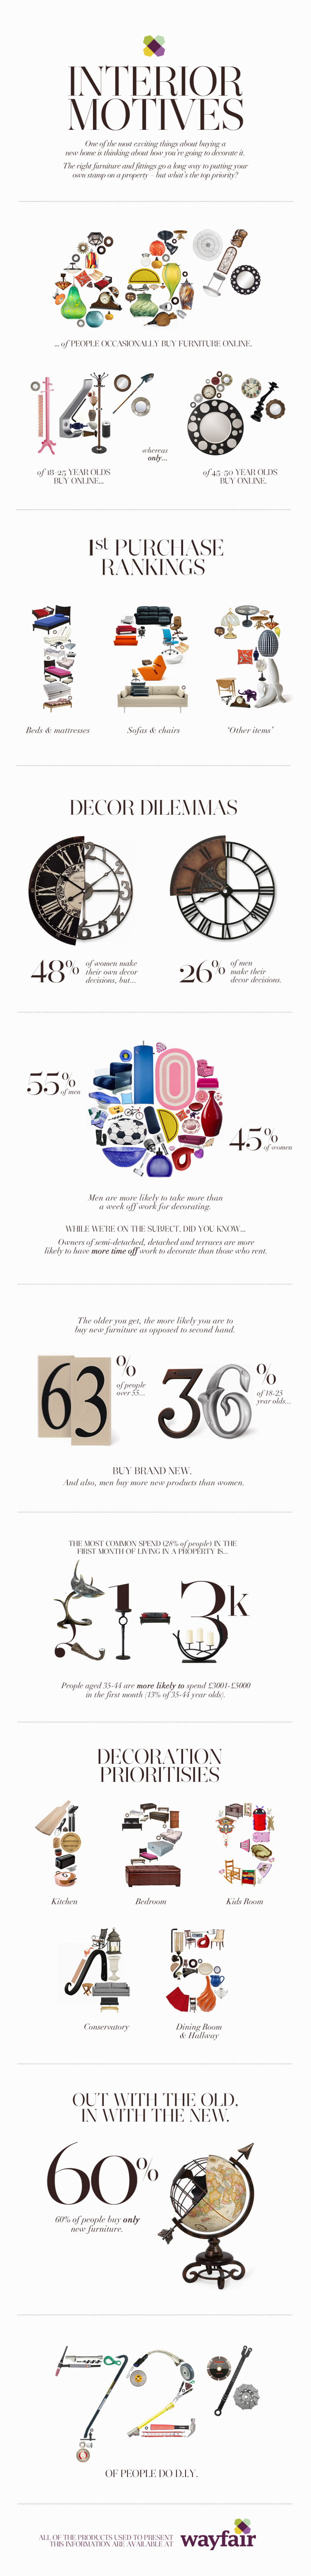 What  is your interior motive? Infographic